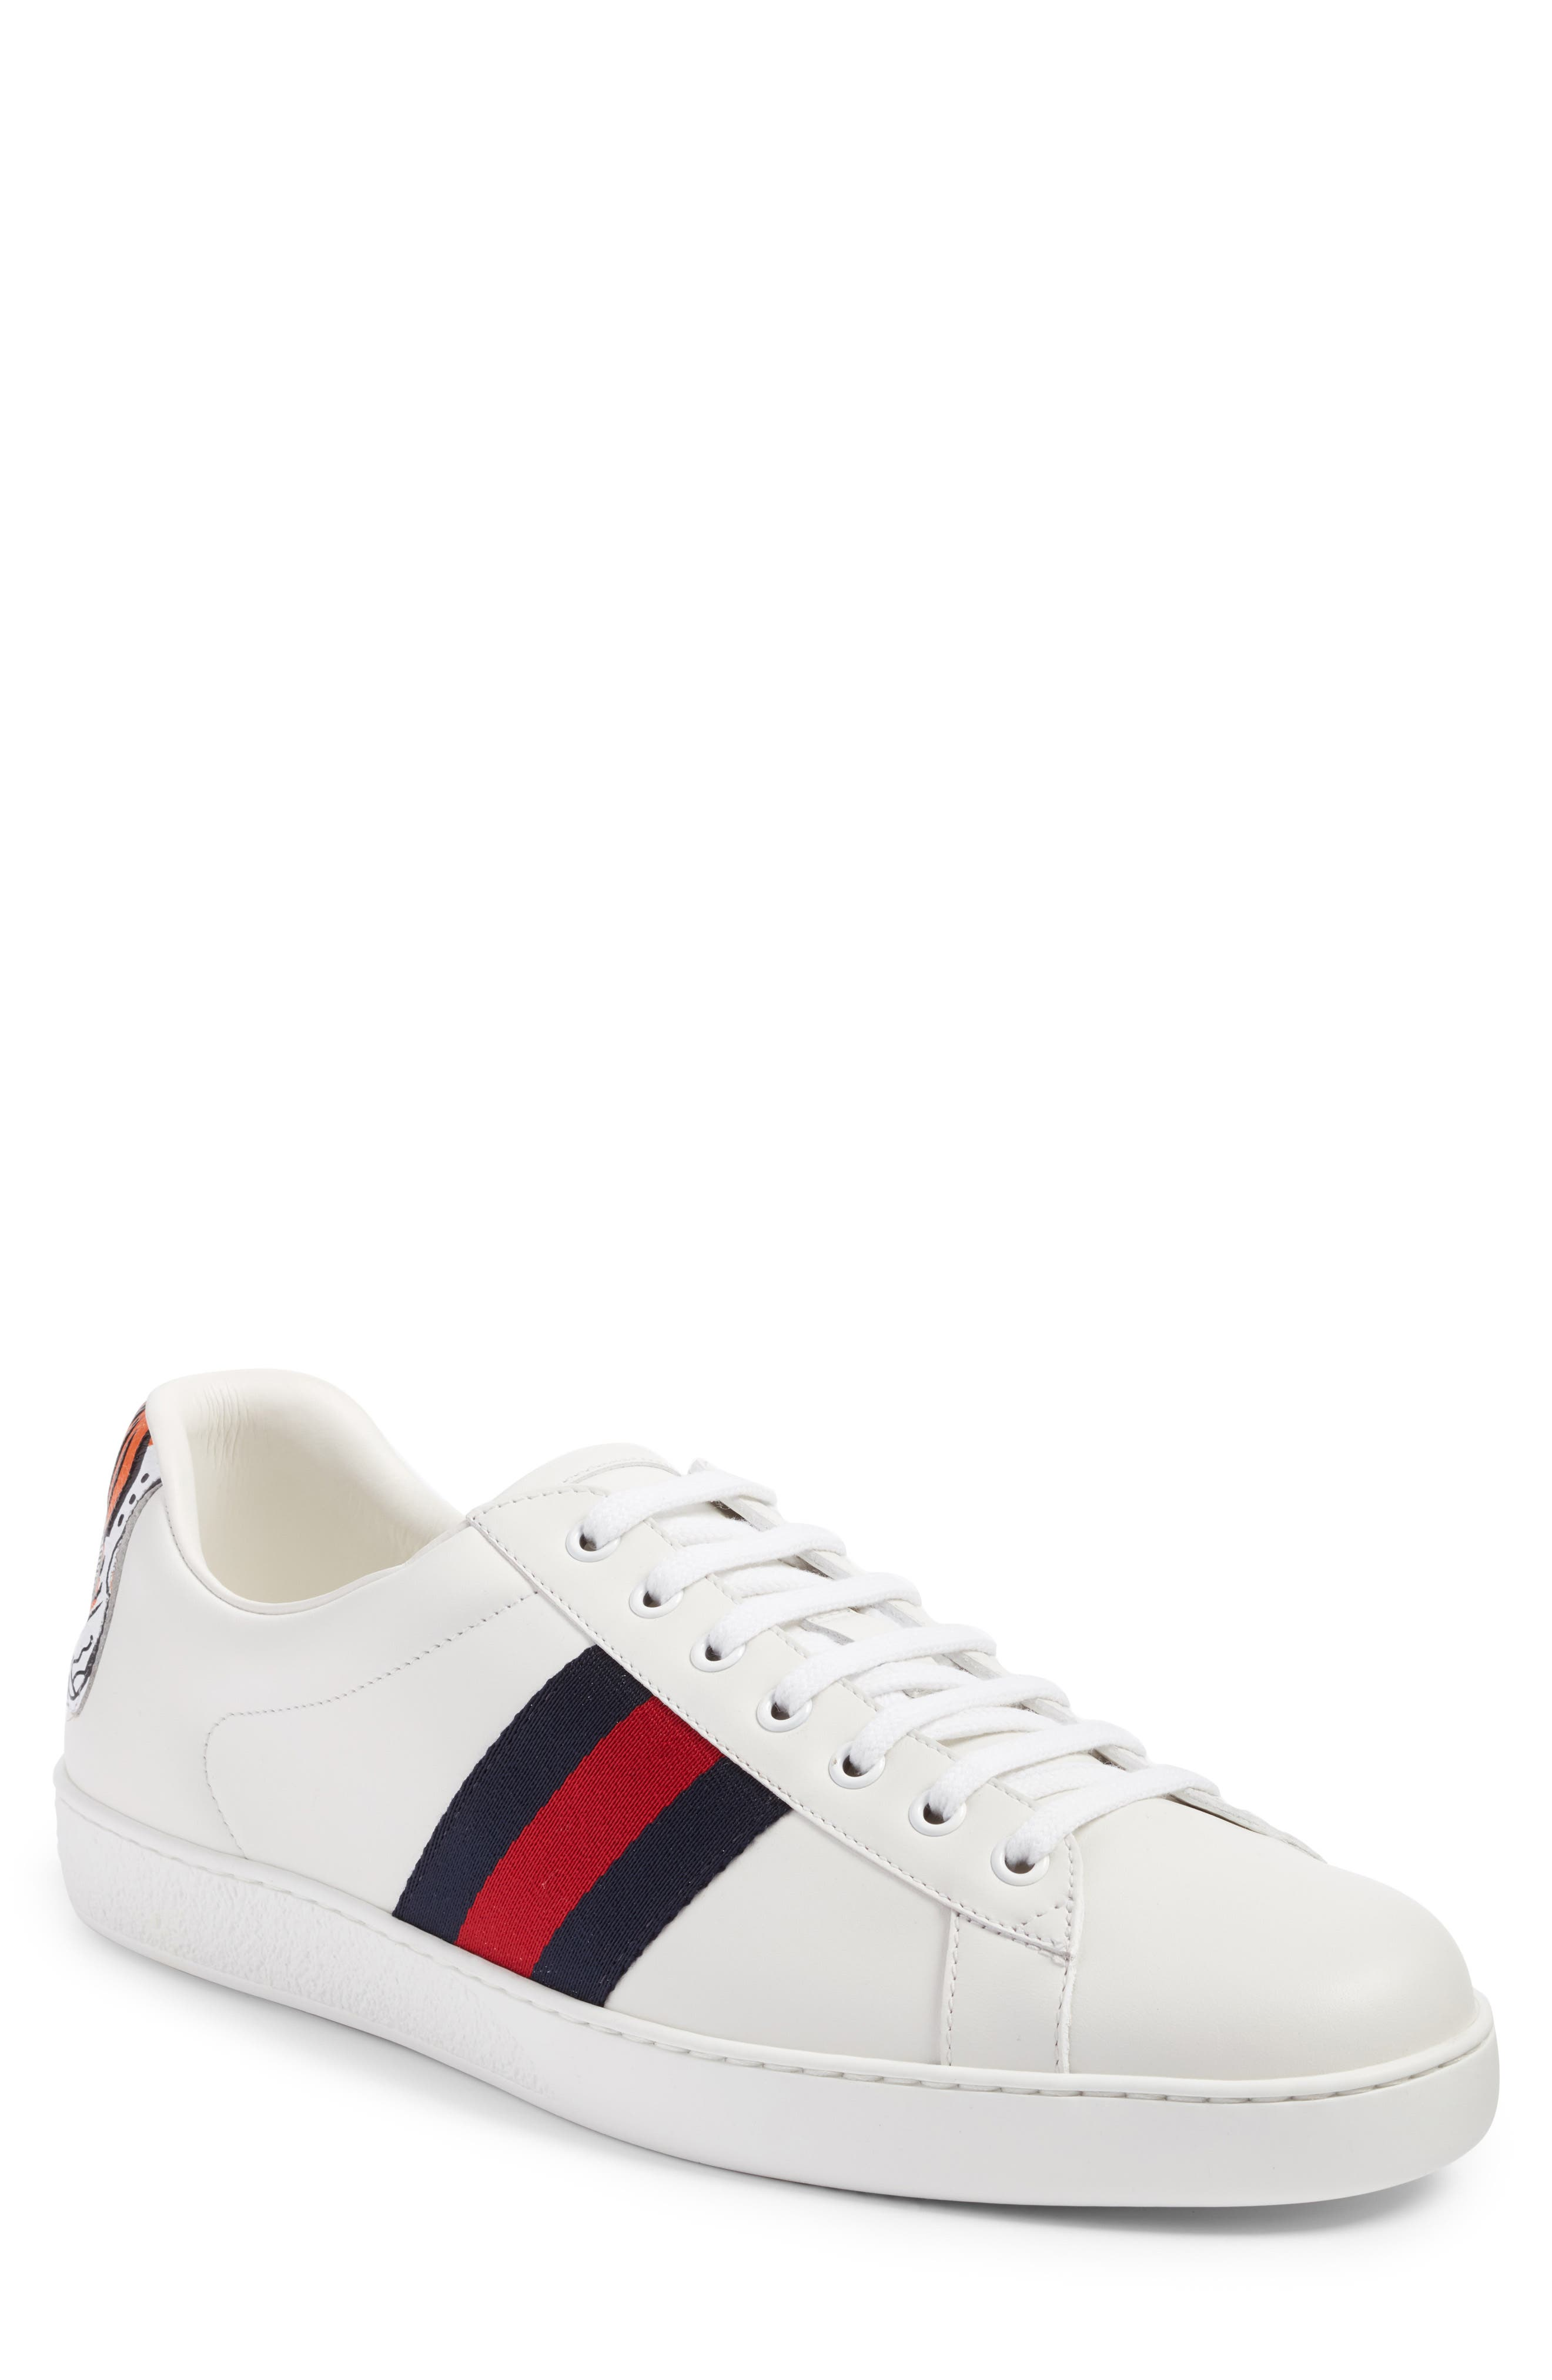 Alternate Image 1 Selected - Gucci New Ace Tiger Sneaker (Men)